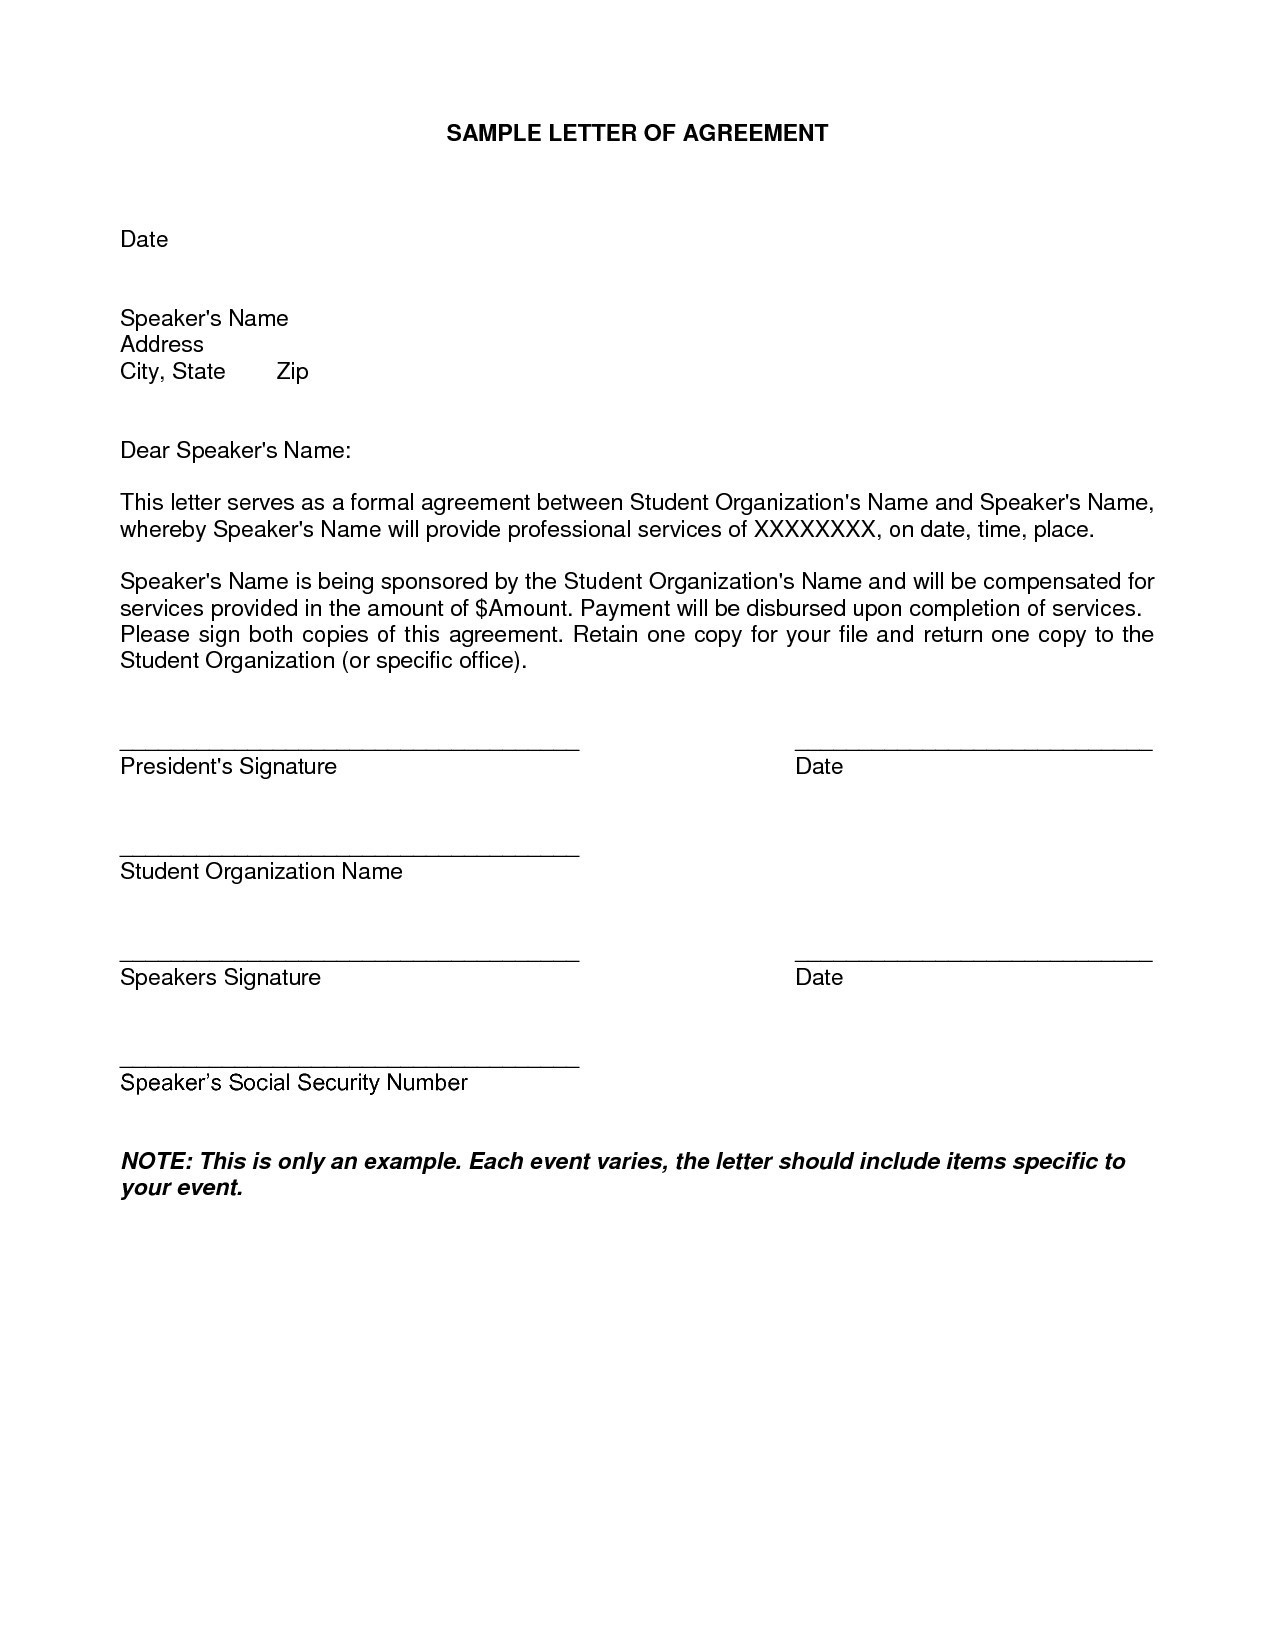 irs letter template letter to the irs template